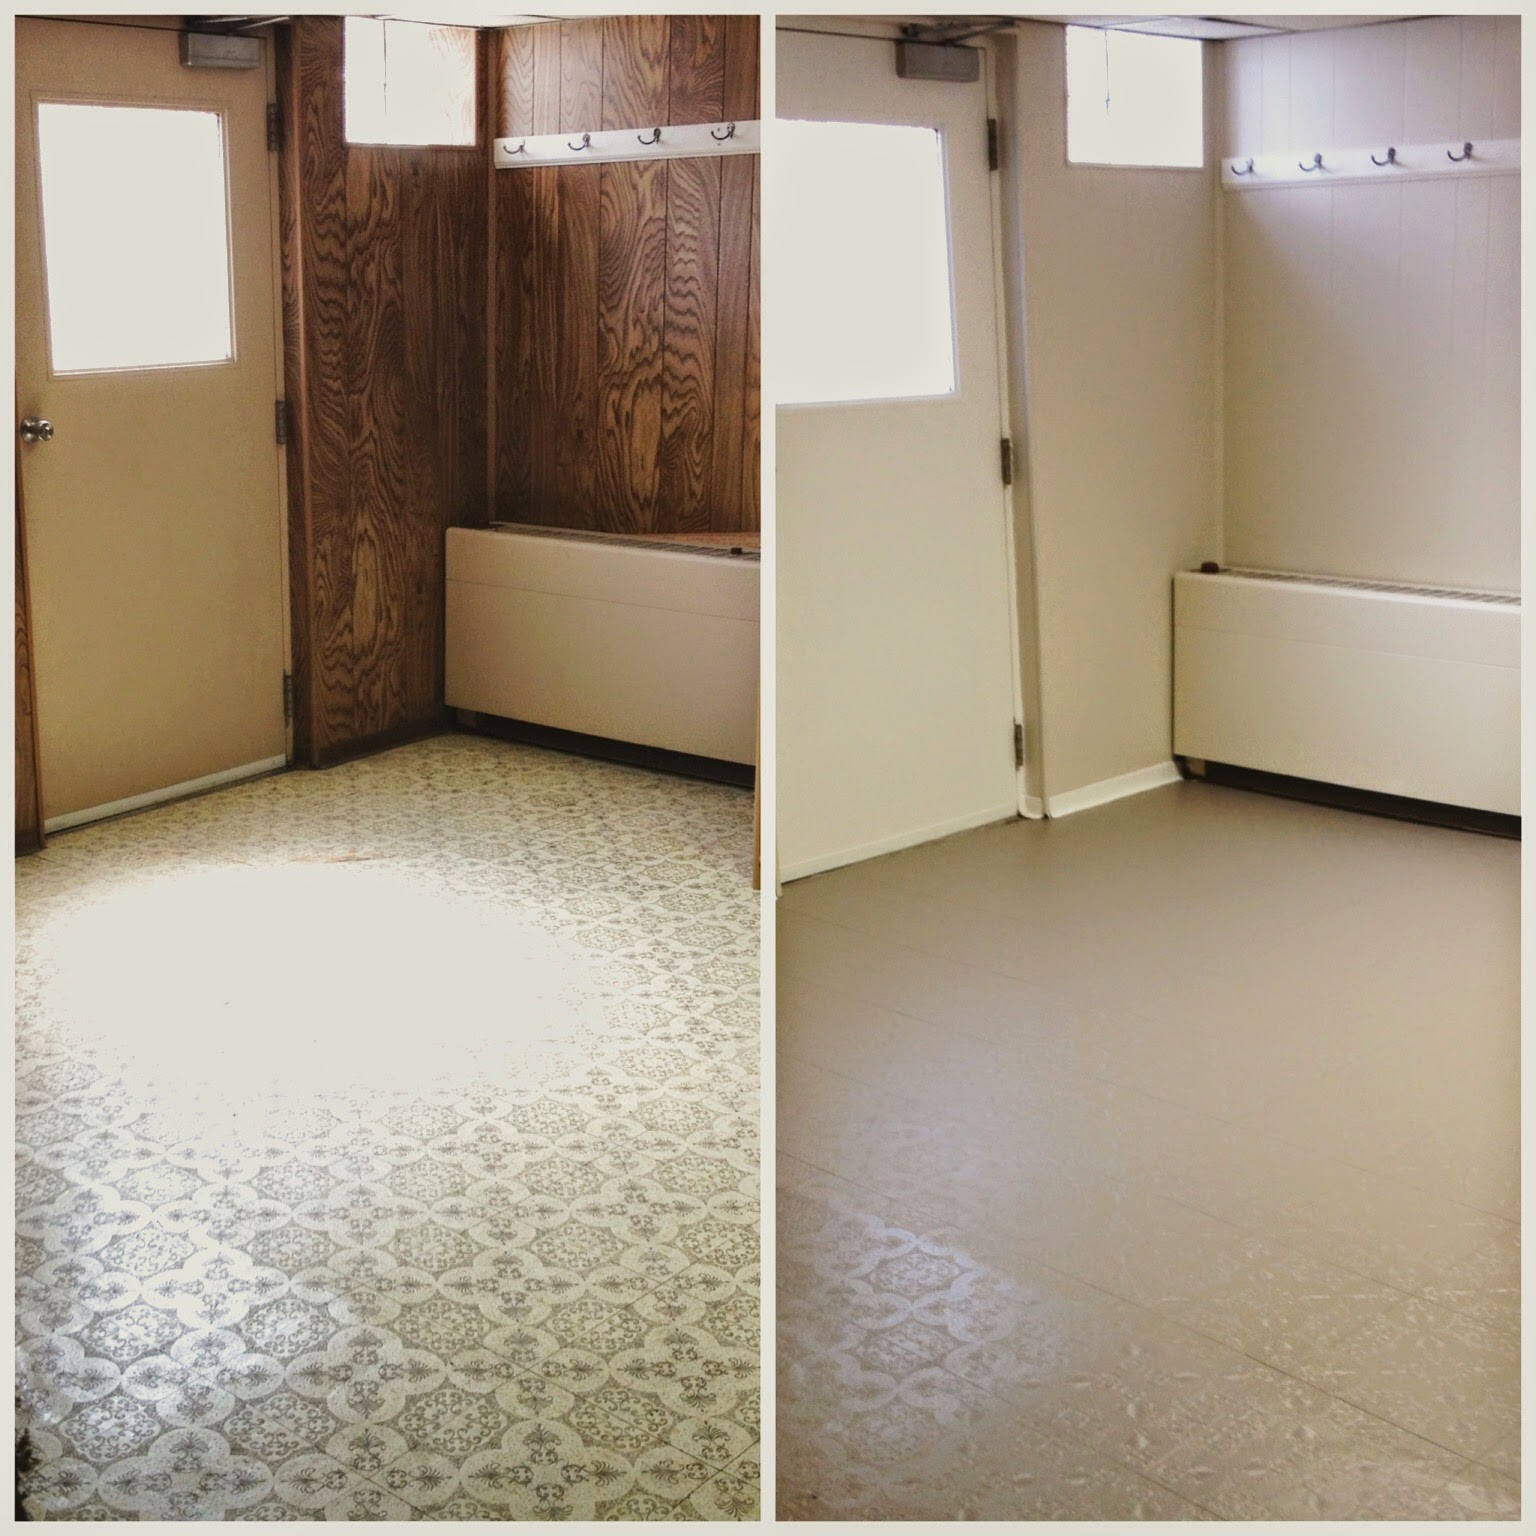 Linoleum Kitchen Flooring Pictures: The Owl's Skull: Painting Linoleum Floors: Basement Rehab